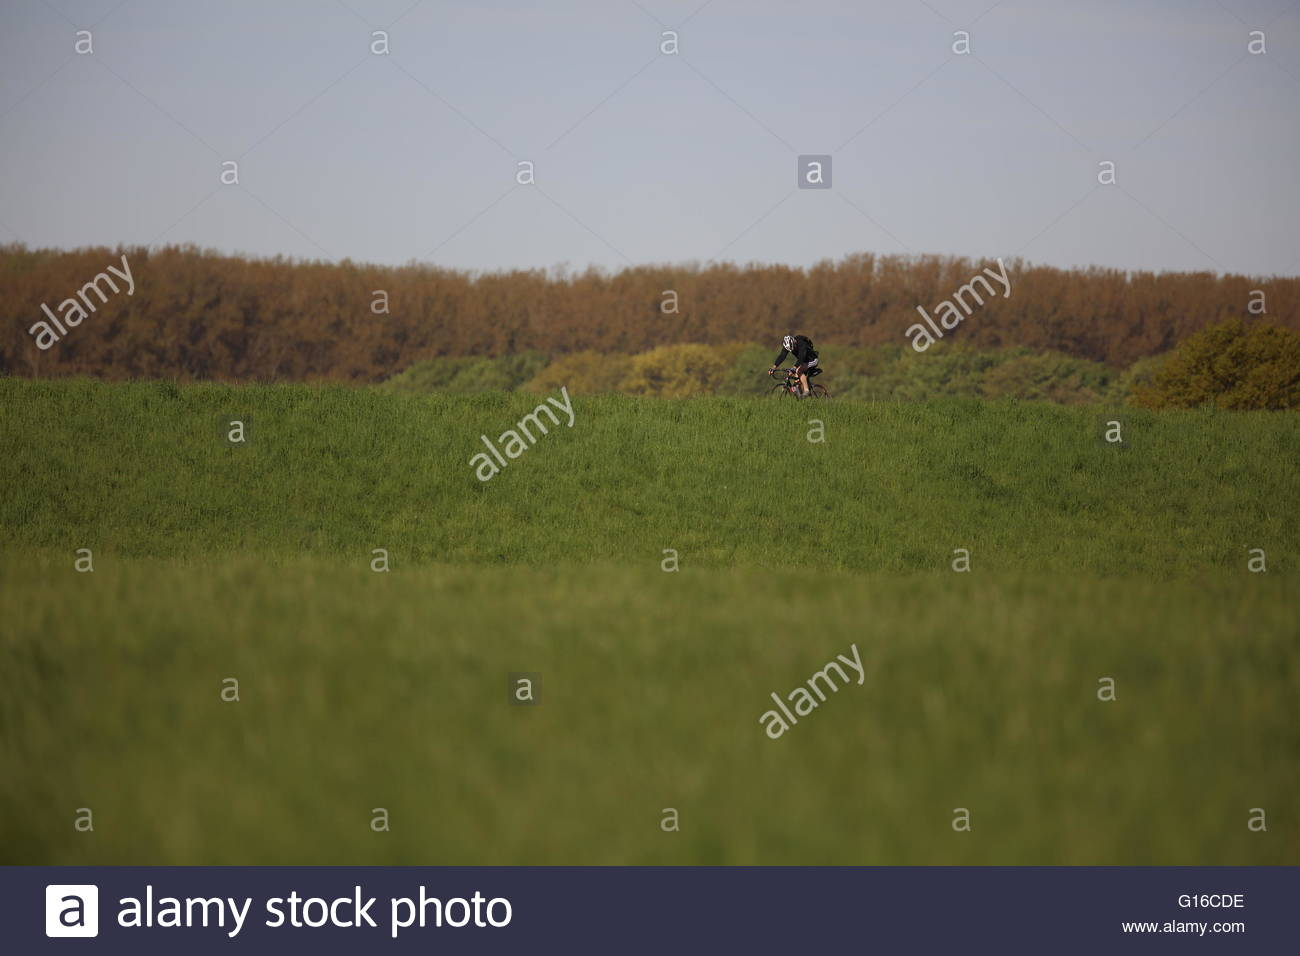 bicyclist-in-meadow-with-foresst-in-back